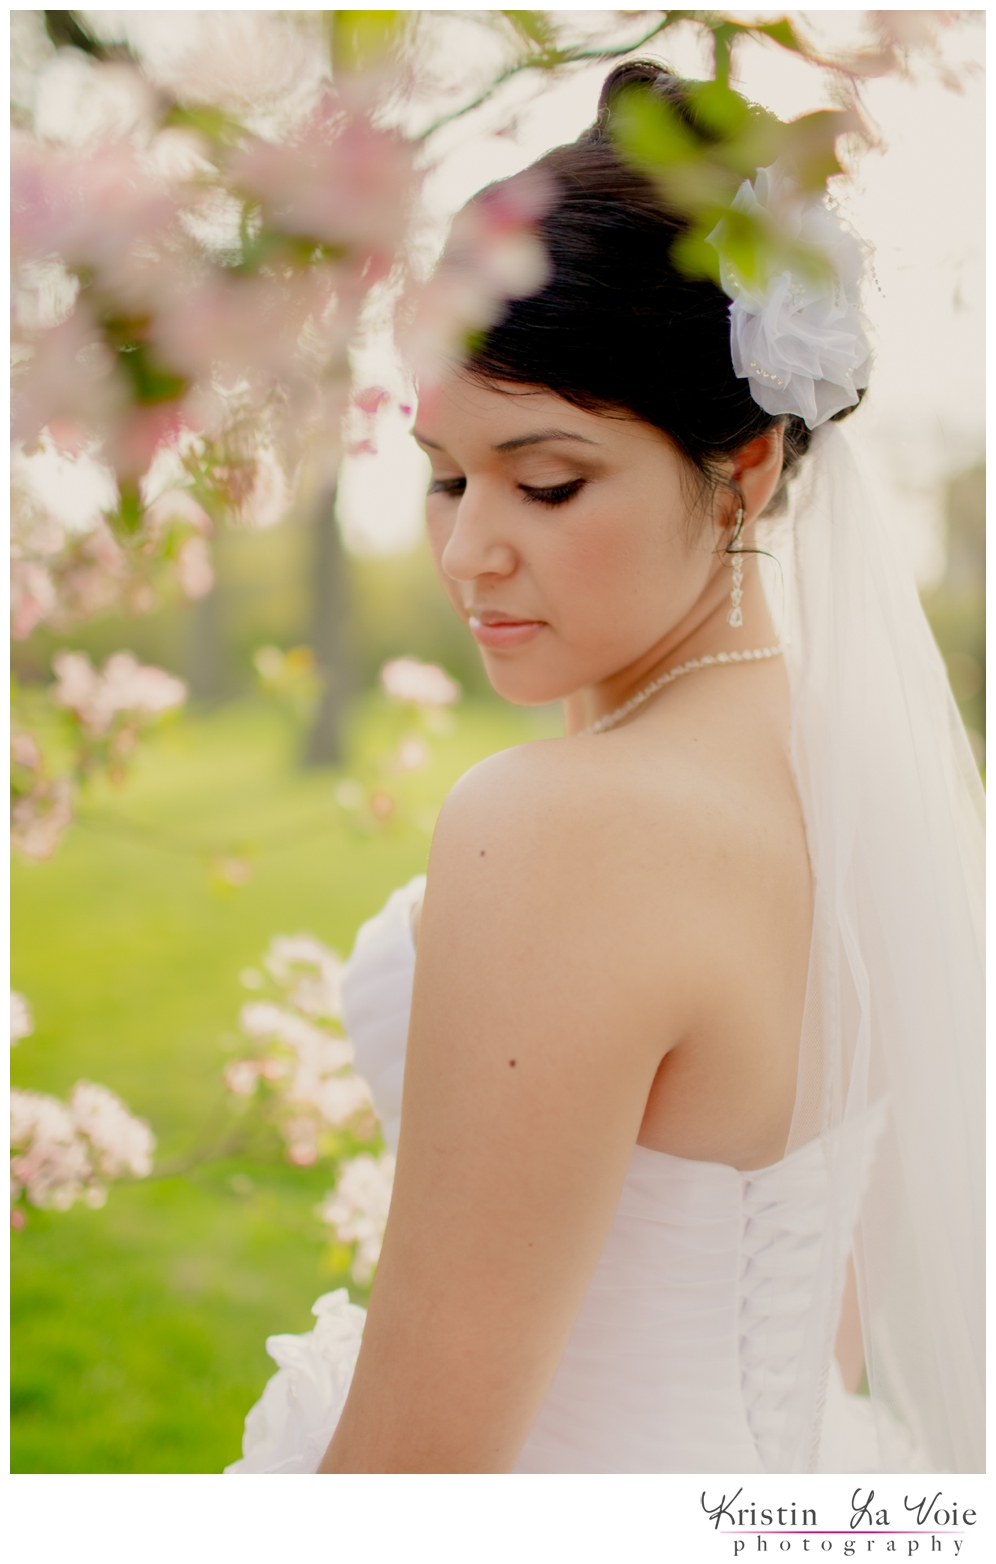 Kristin-La-Voie-Photography-Mint-Yellow-Styled-Shoot-Lincoln-Park-Wedding-Photographer-30.jpg